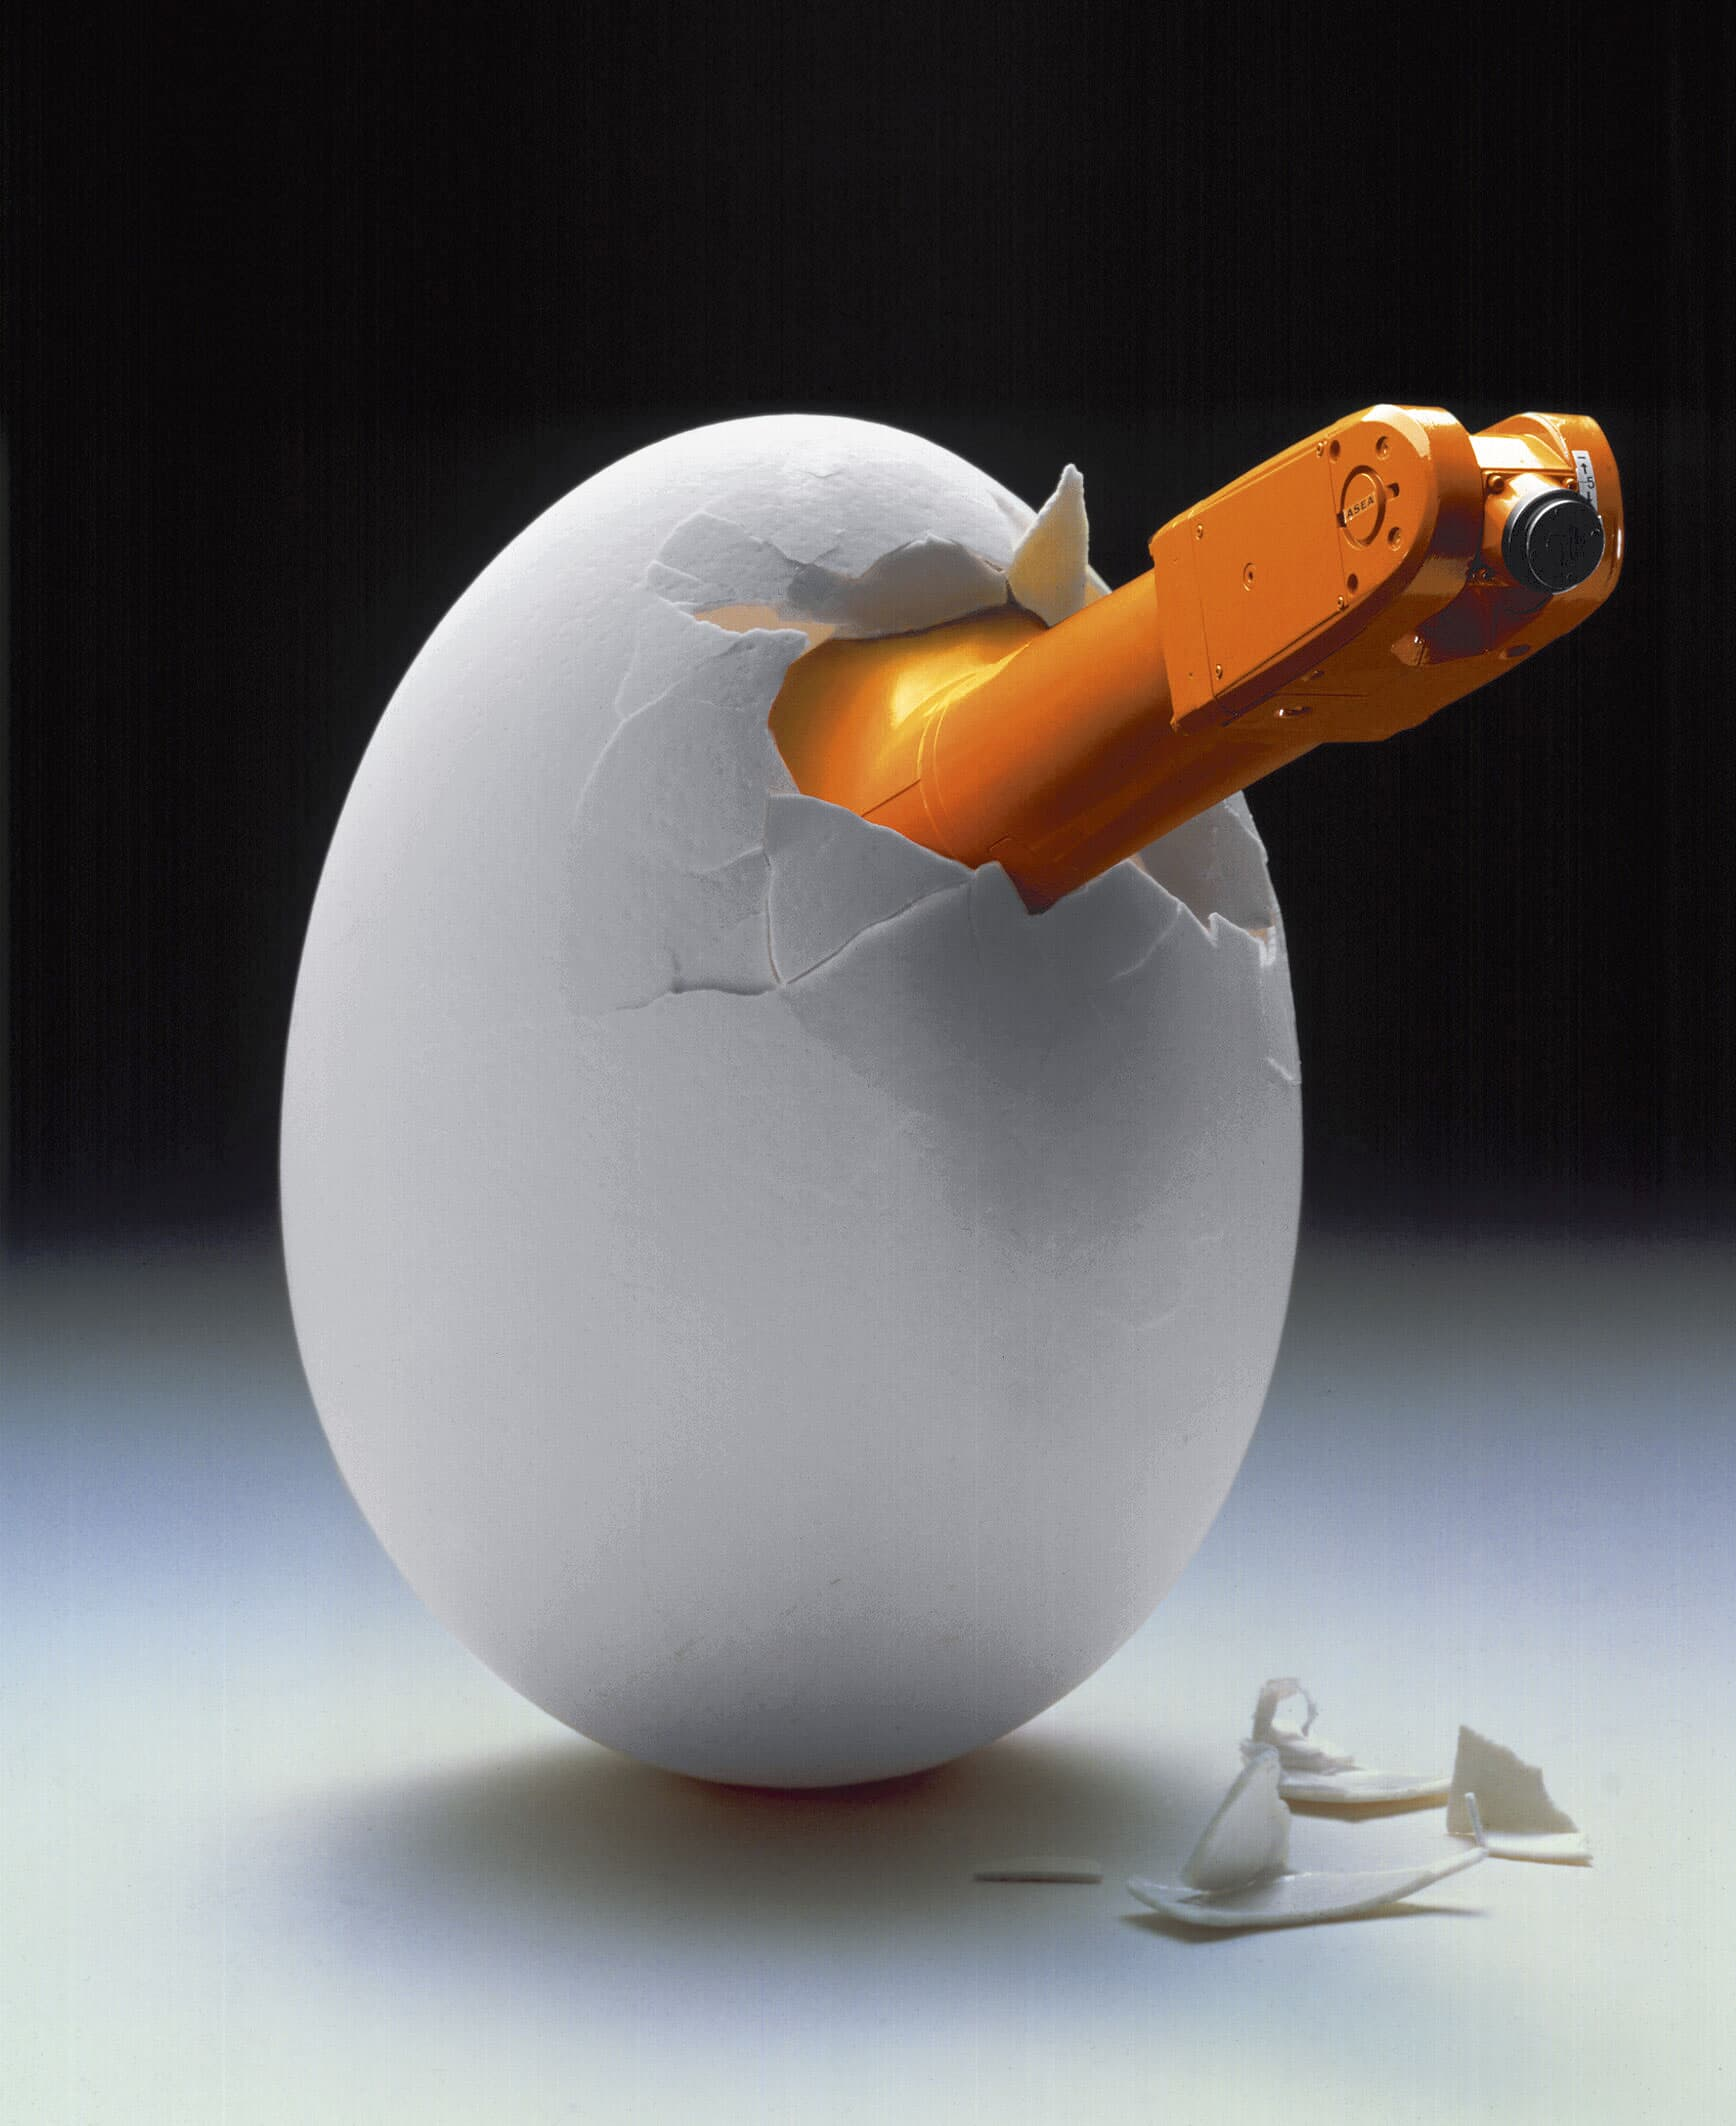 4 IRB 2000 arc-welding, AC-powered robot was born out of an egg at a show  in Brussels in 1986